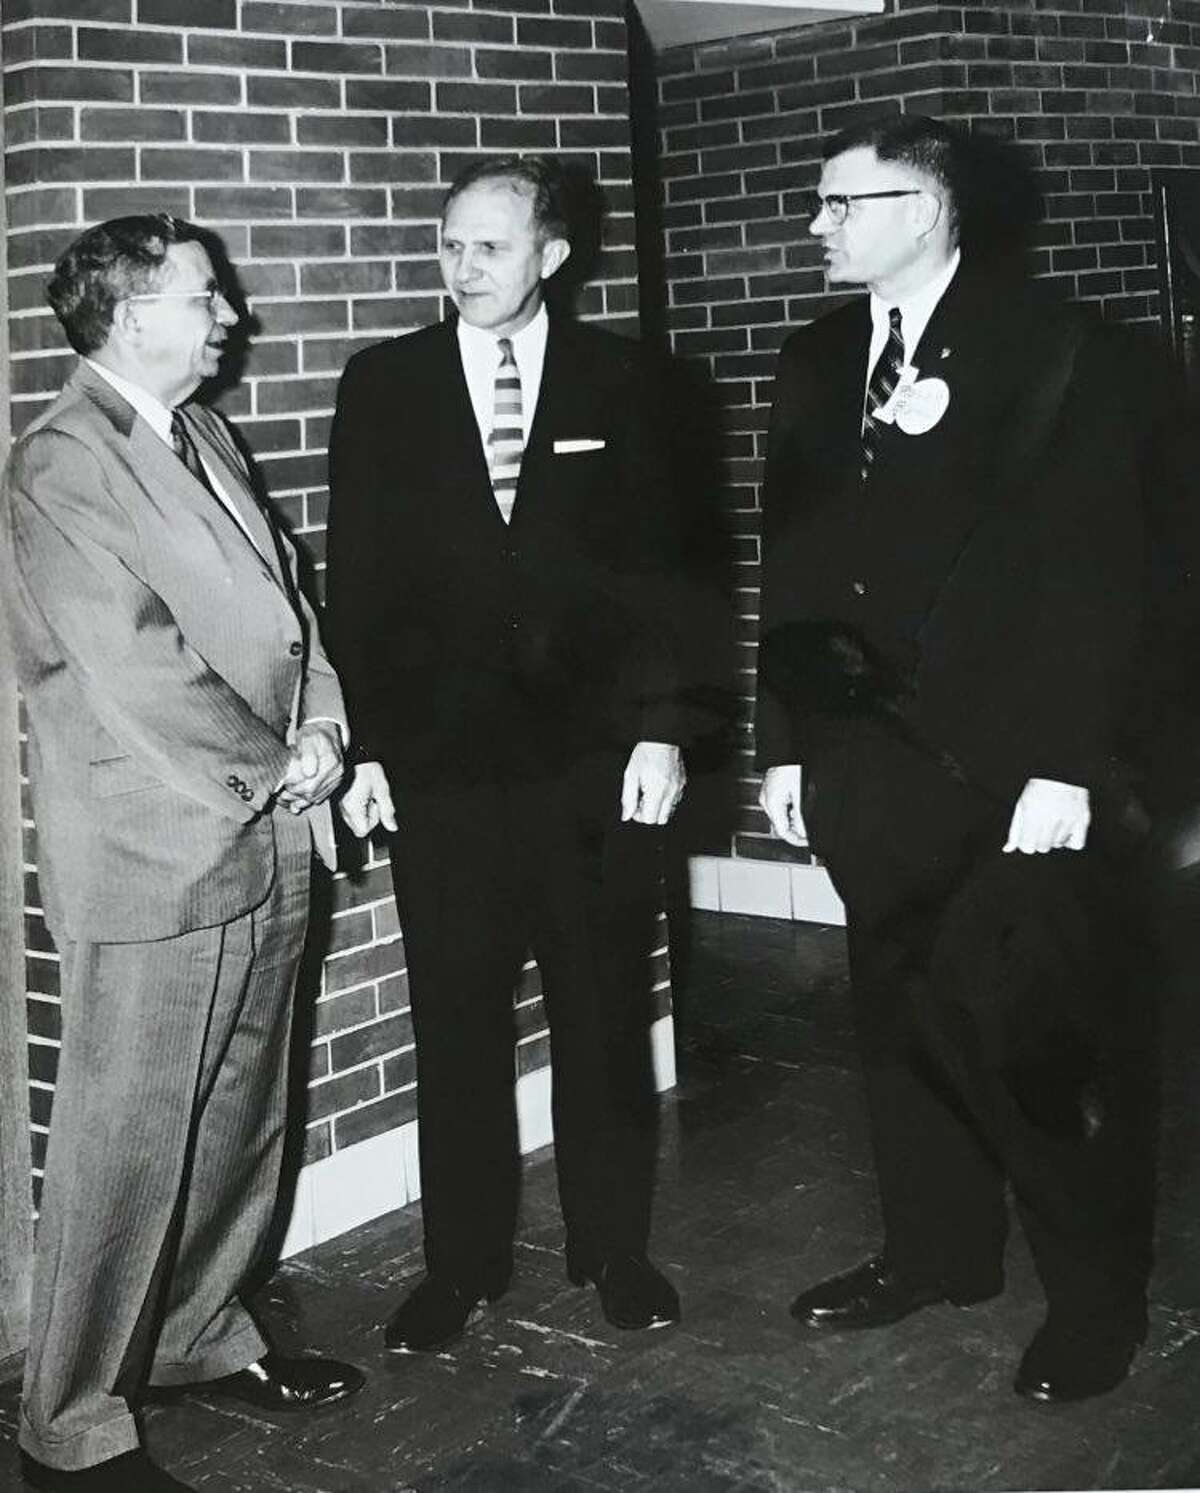 Dr. Earl Kelley, left, of Wayne State University, was guest speaker at the 10th anniversary of Plymouth Elementary School. Pictured in center, Robert W. Davis, school principal, and Roger W. Bohl, program chair of the PTA. December 1964